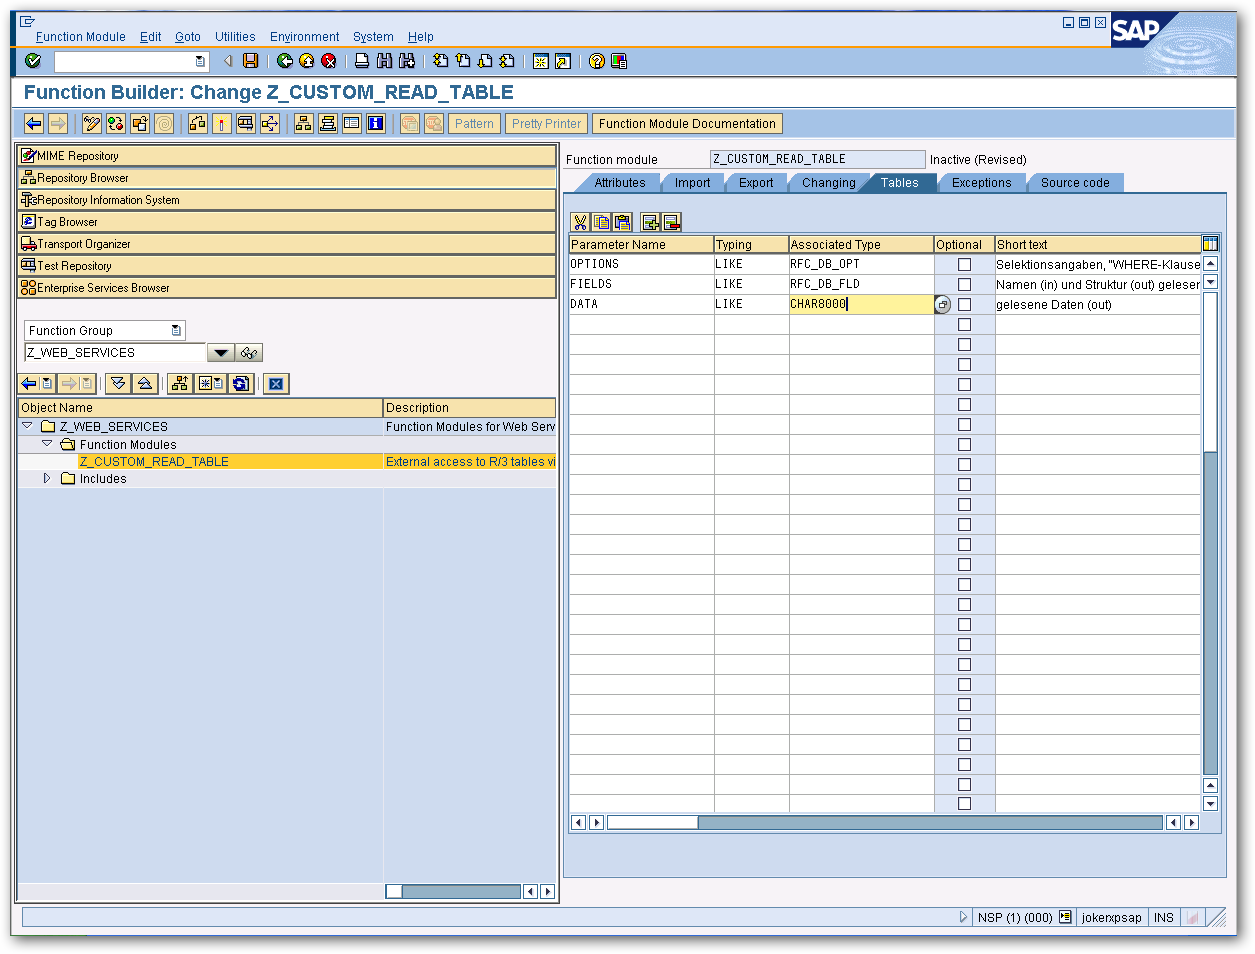 CData SAP OData Connector 2016 - Using a Custom Read Table Function